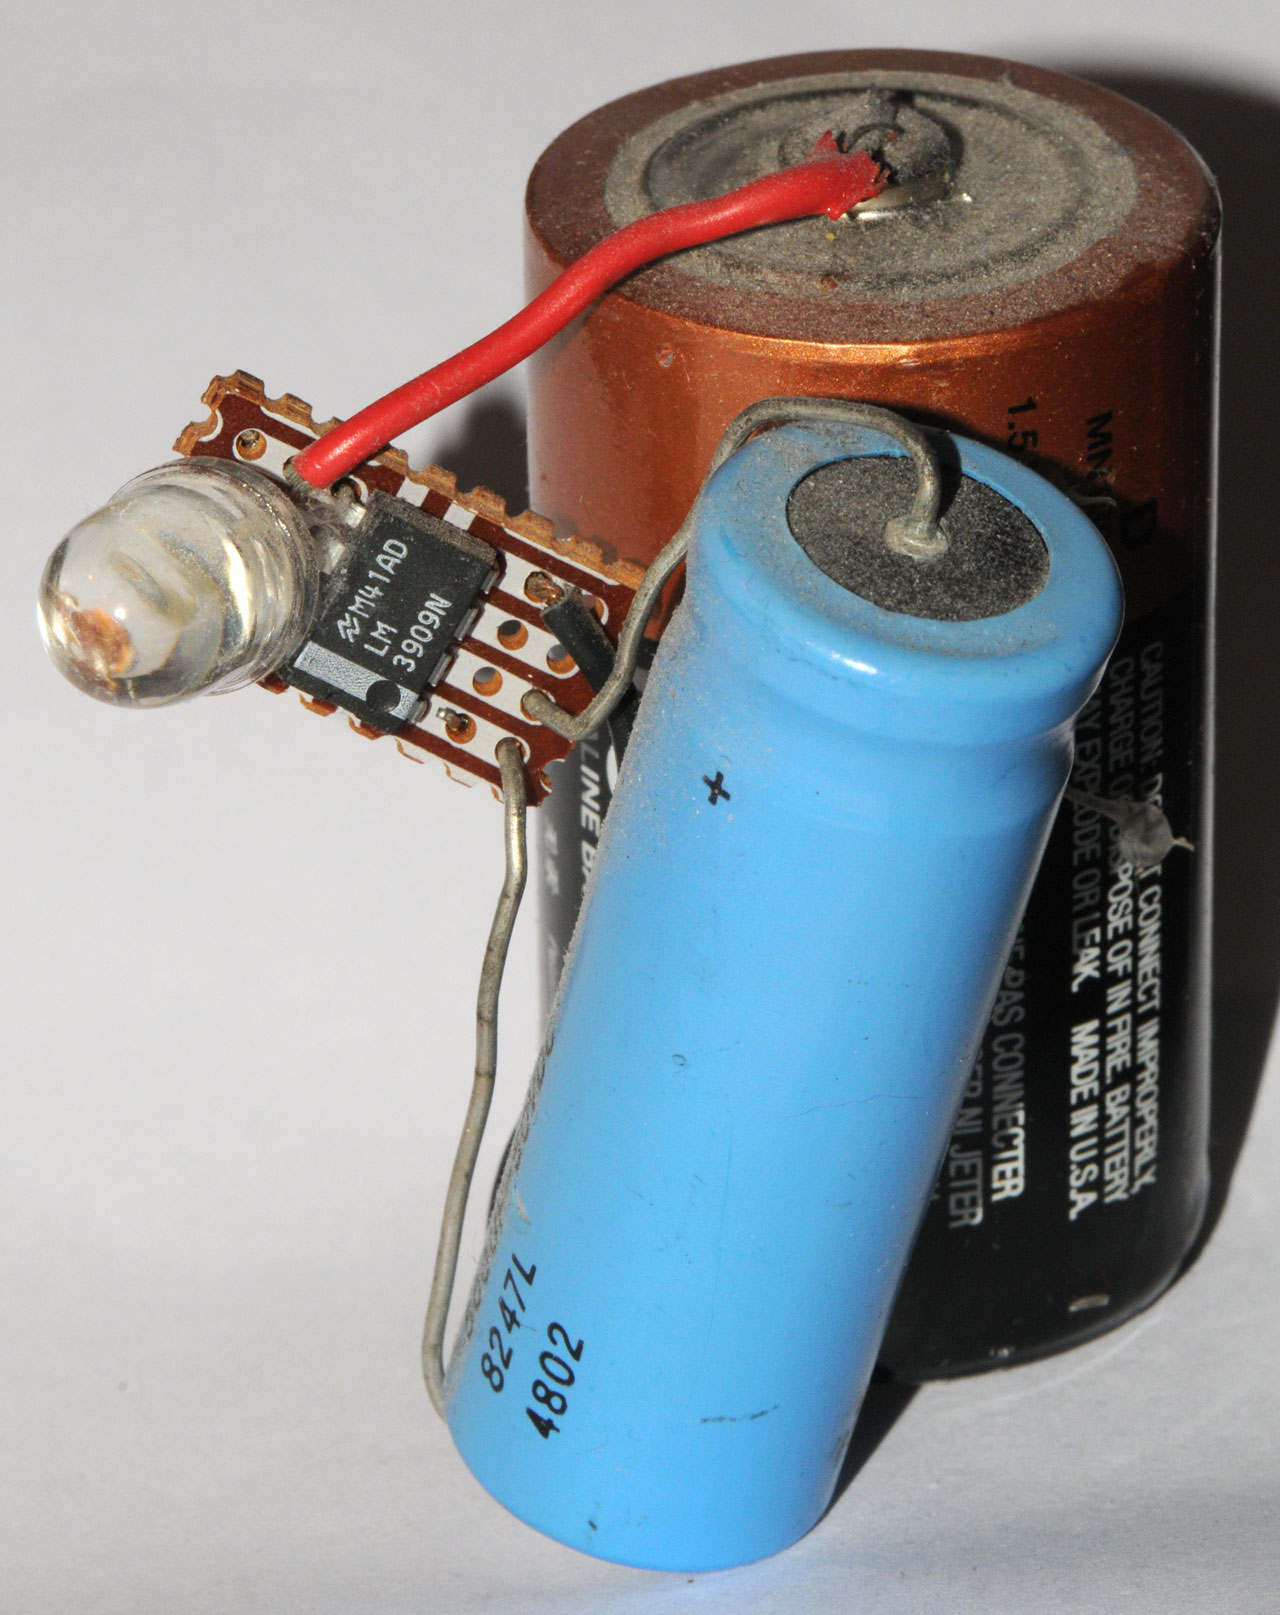 Brookes Led Circuits Charging A 500 F Capacitor It Charges Up Lm3909 D Cell Jumbo Uf 50v Cap